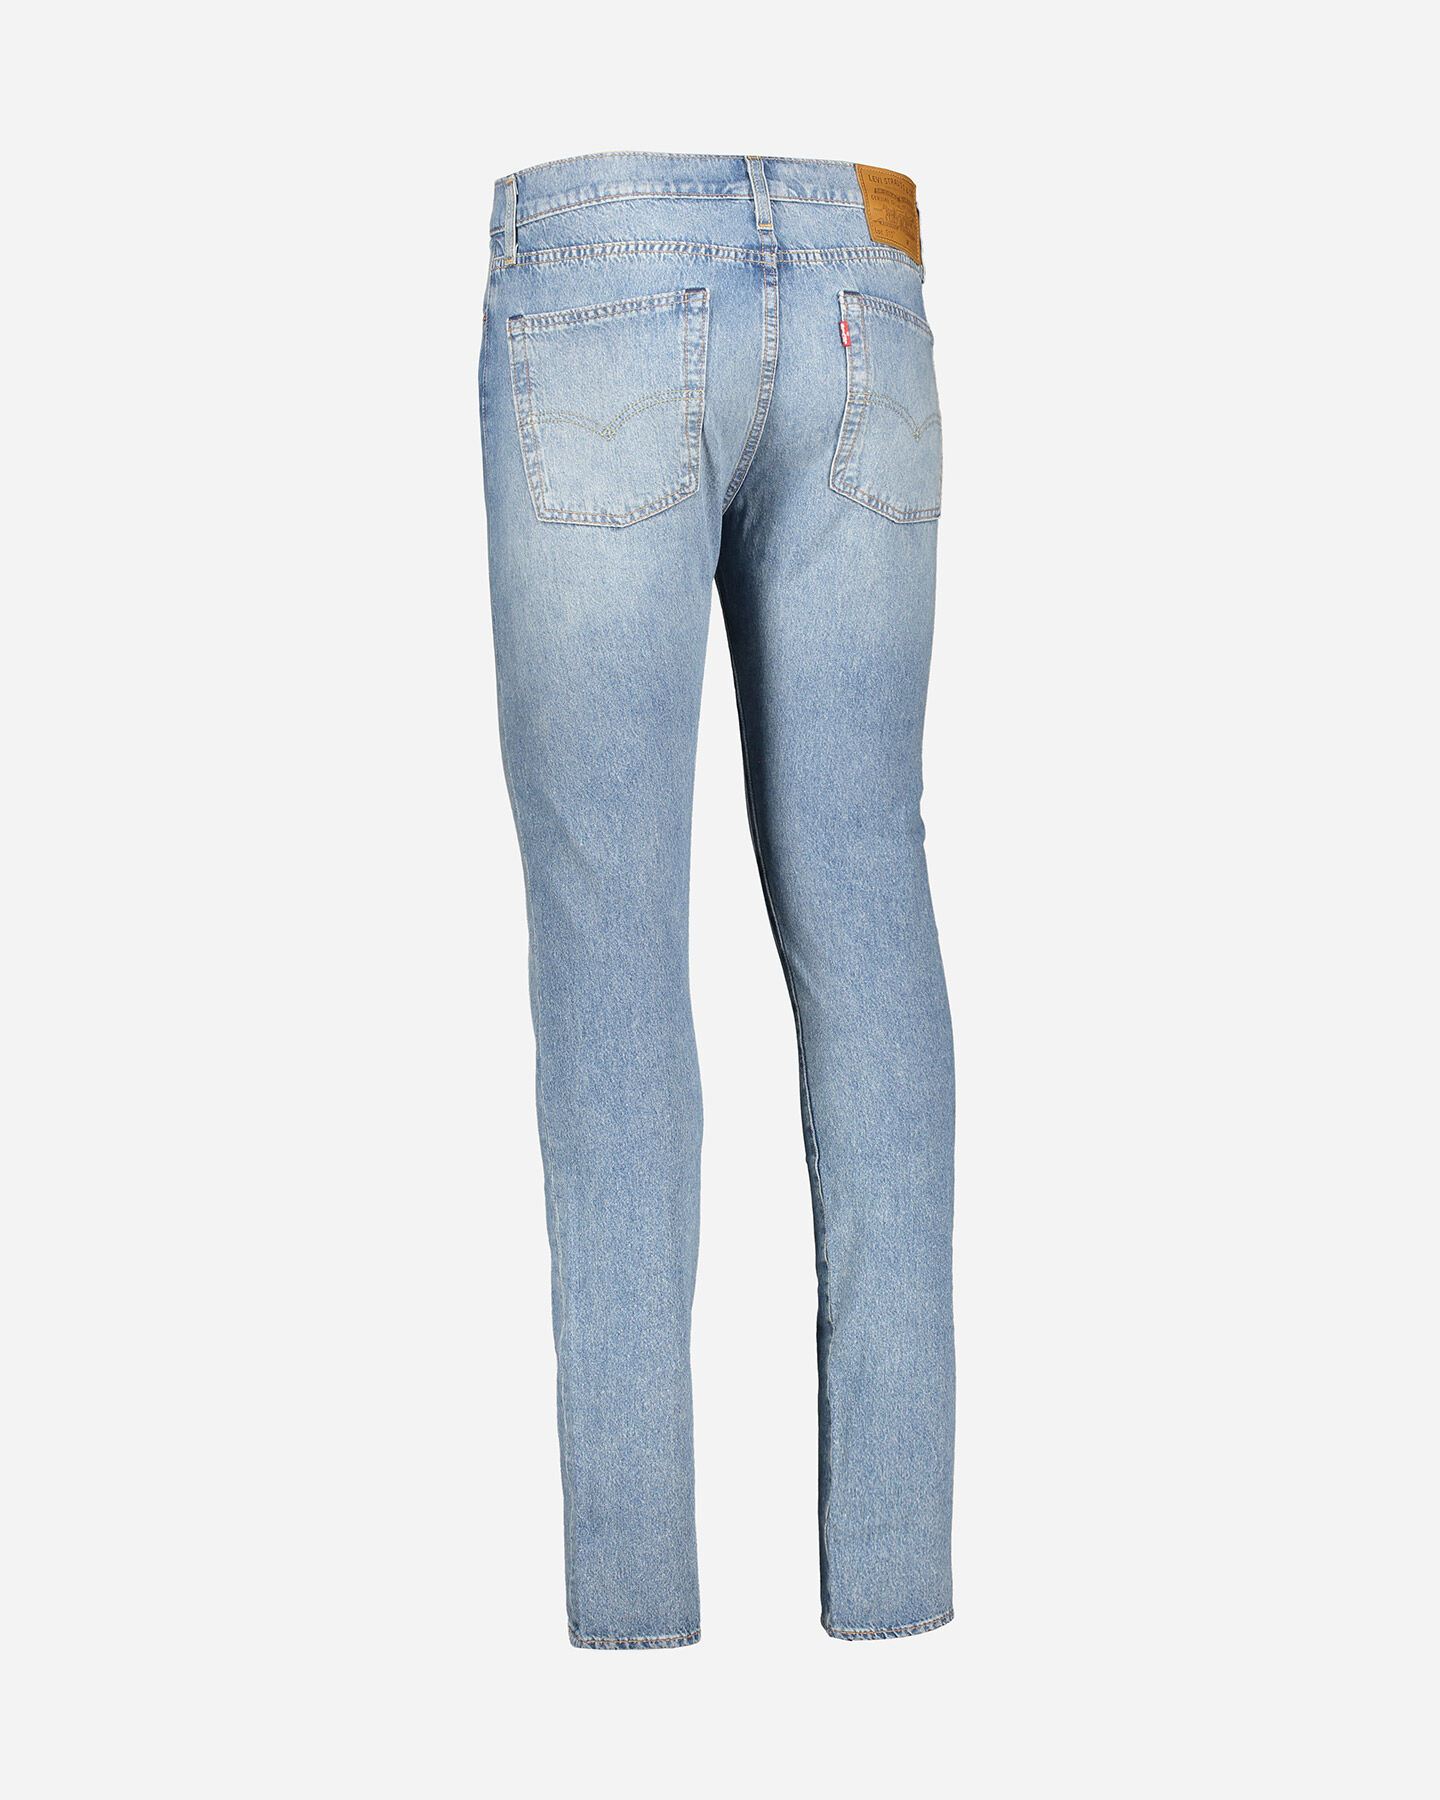 Jeans LEVI'S 510 SKINNY M S4076911 scatto 5